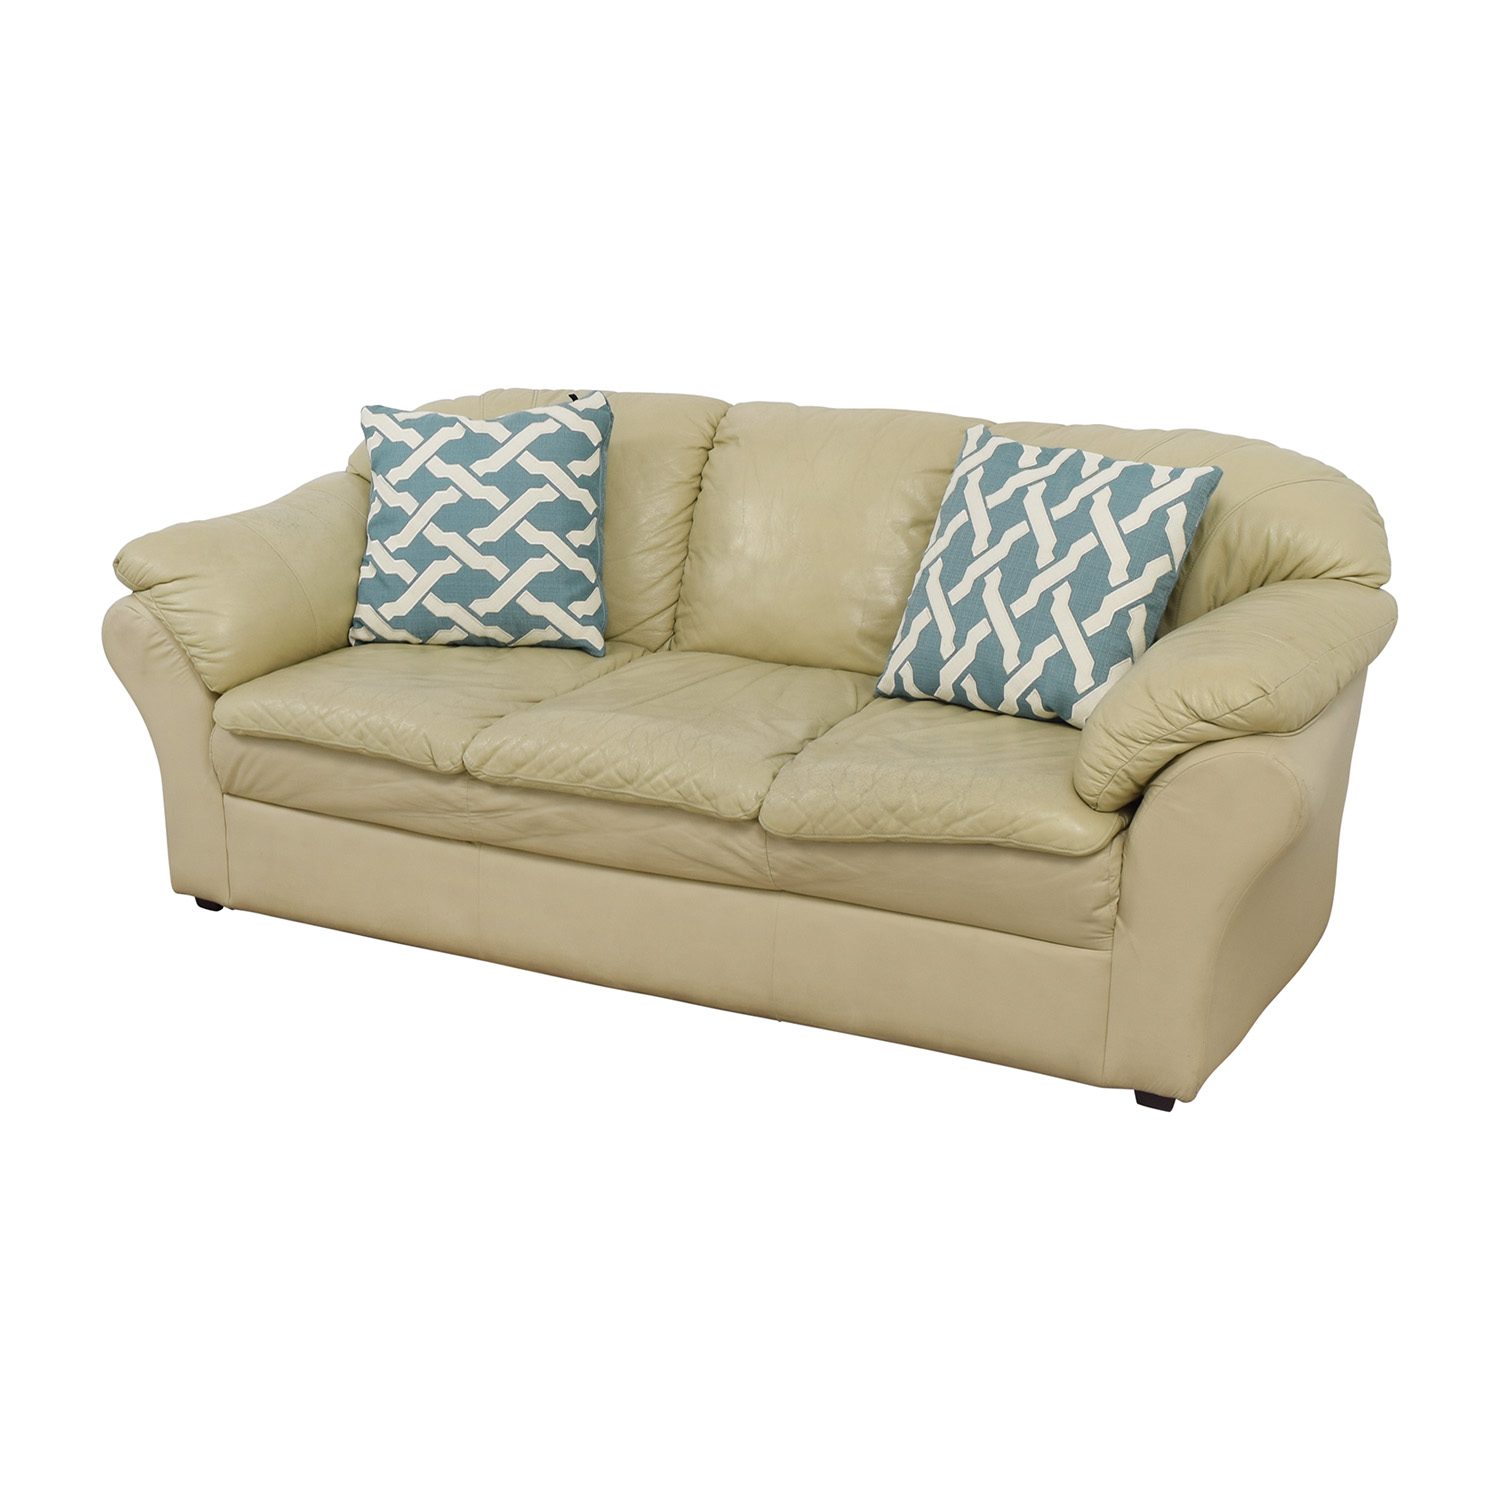 Mals Brooklyn Furniture Mals Brooklyn Furniture Beige Sofa on sale